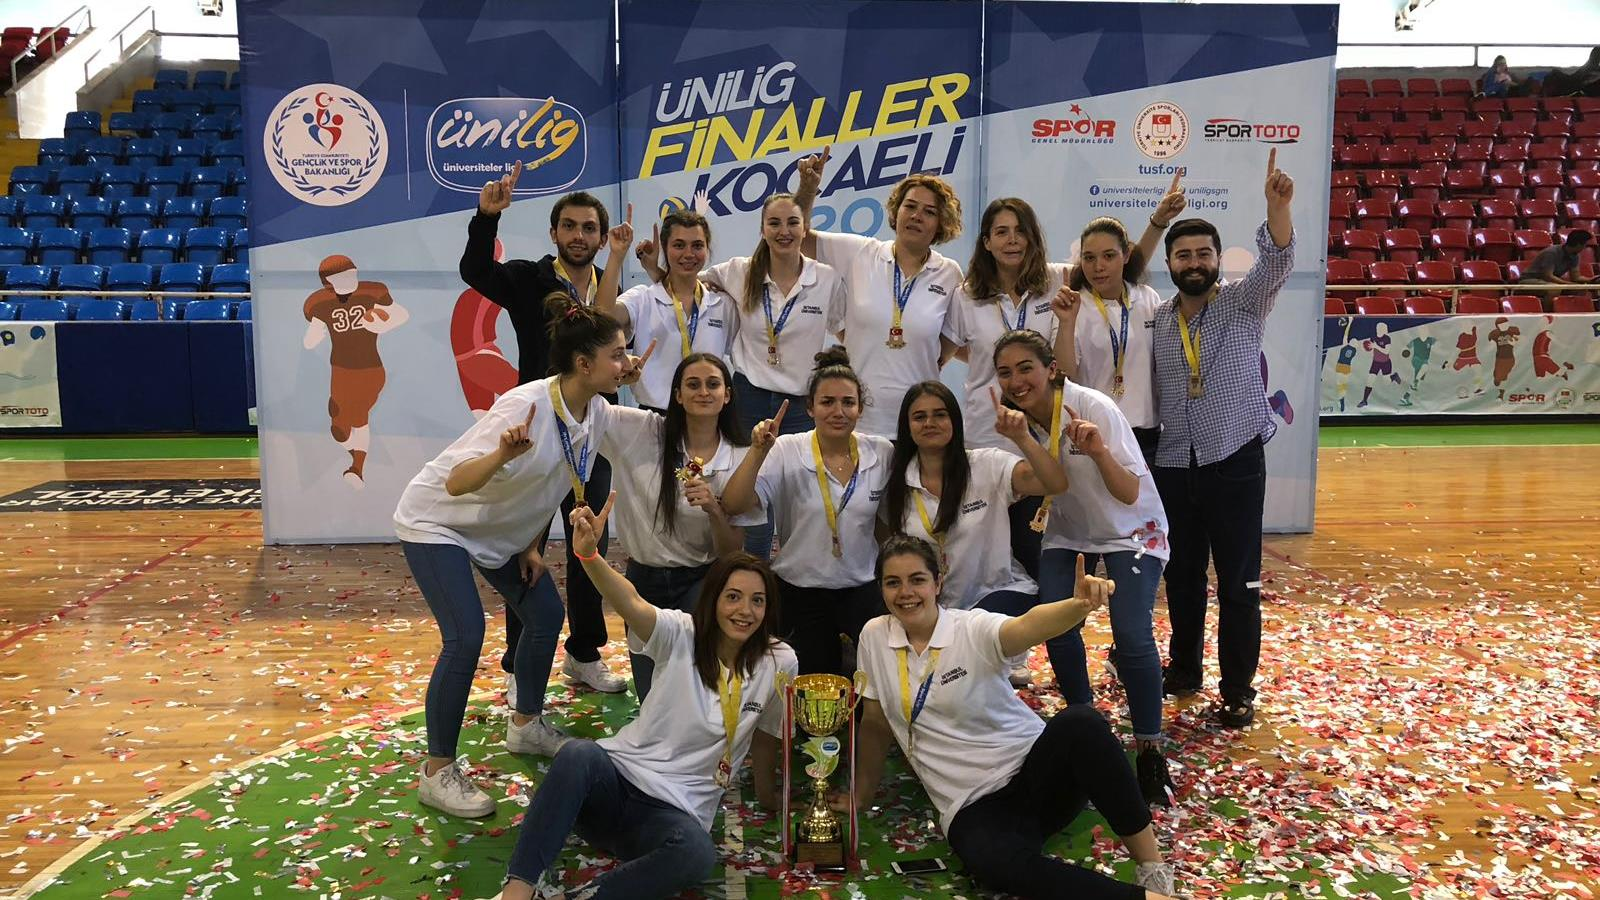 Istanbul-University-is-Ünilig's-2017-2018-Season-Champion